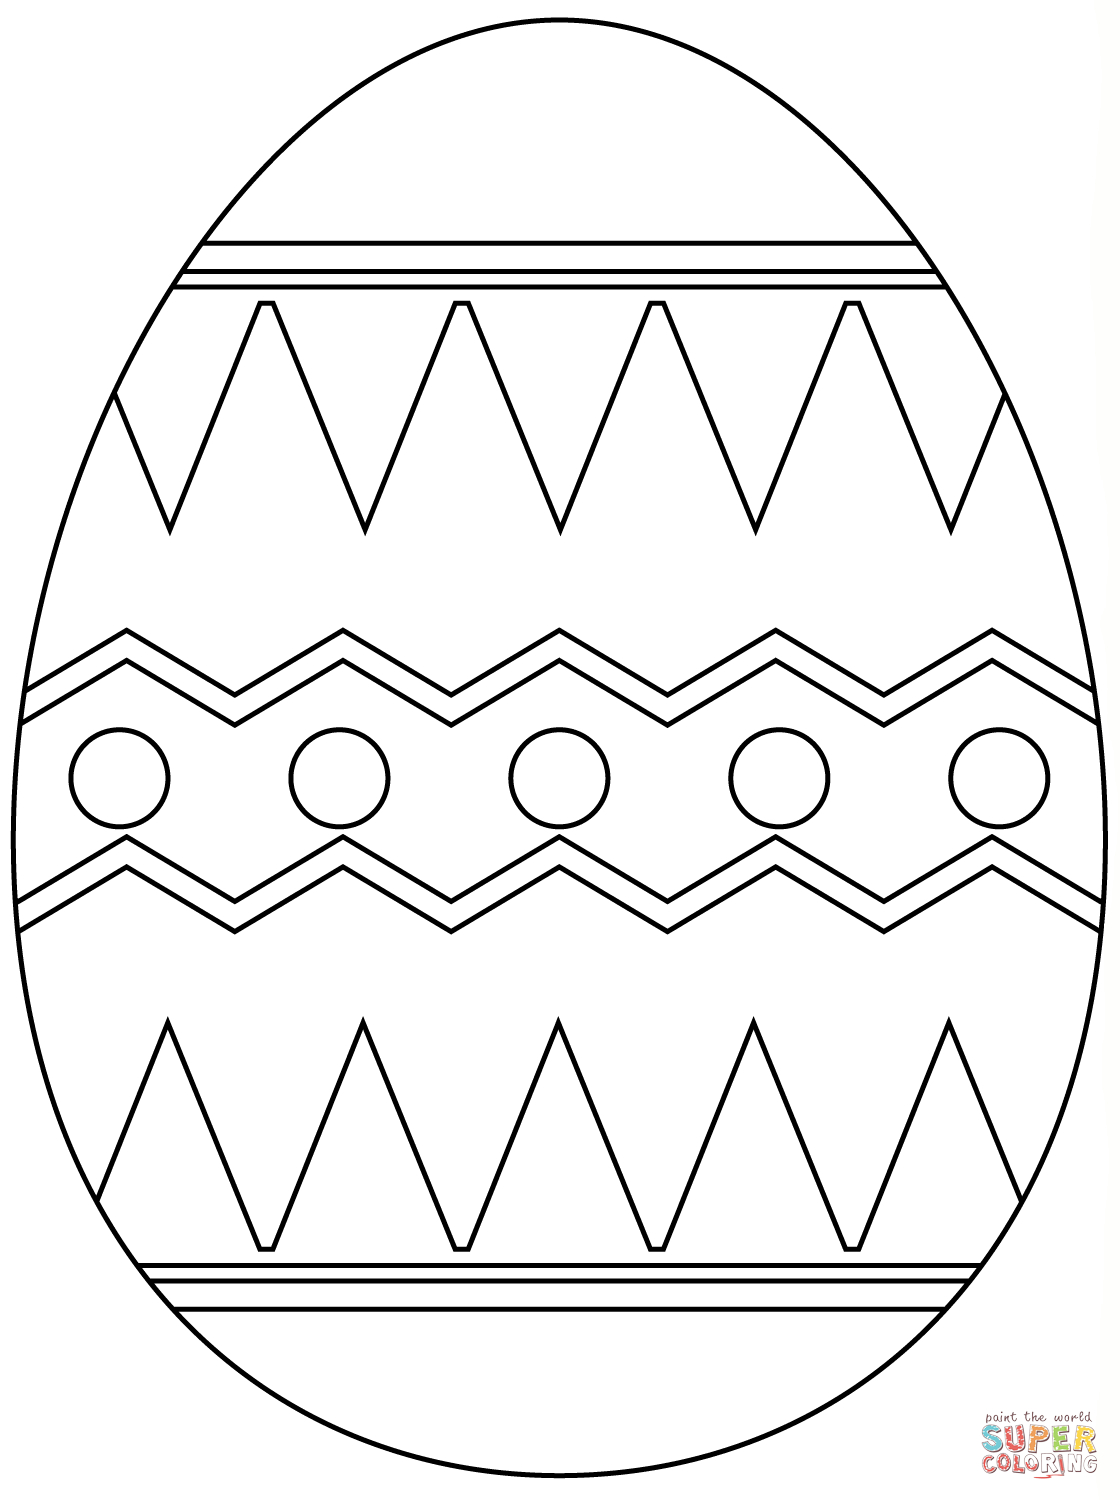 Easter Egg With Abstract Pattern Coloring Page   Free Printable - Easter Egg Coloring Pages Free Printable